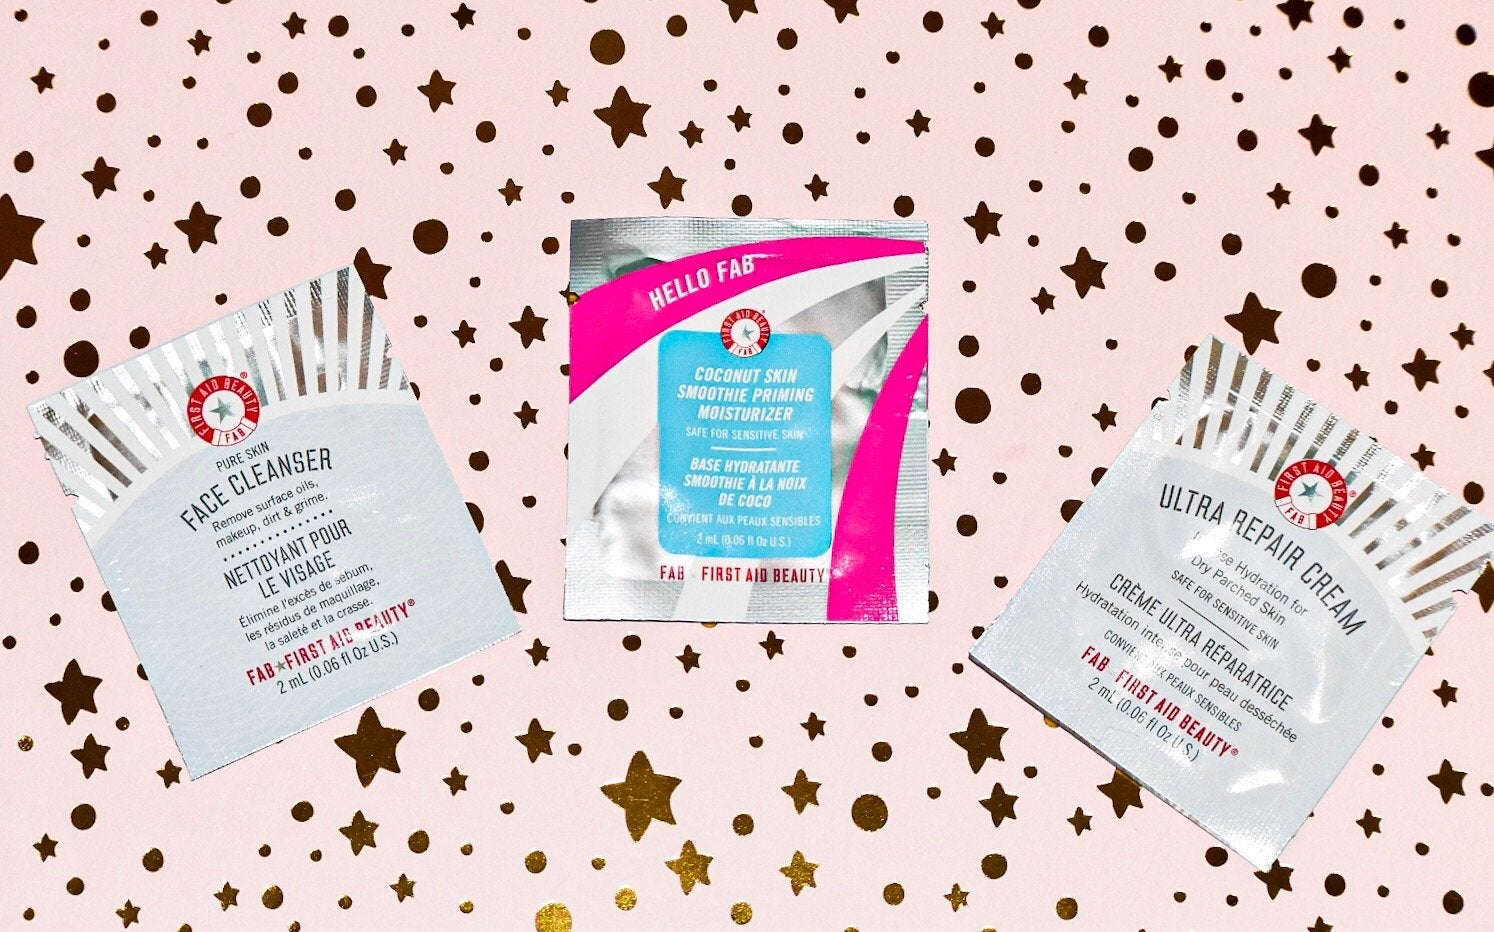 First Aid Beauty Survival Kit Product Samples